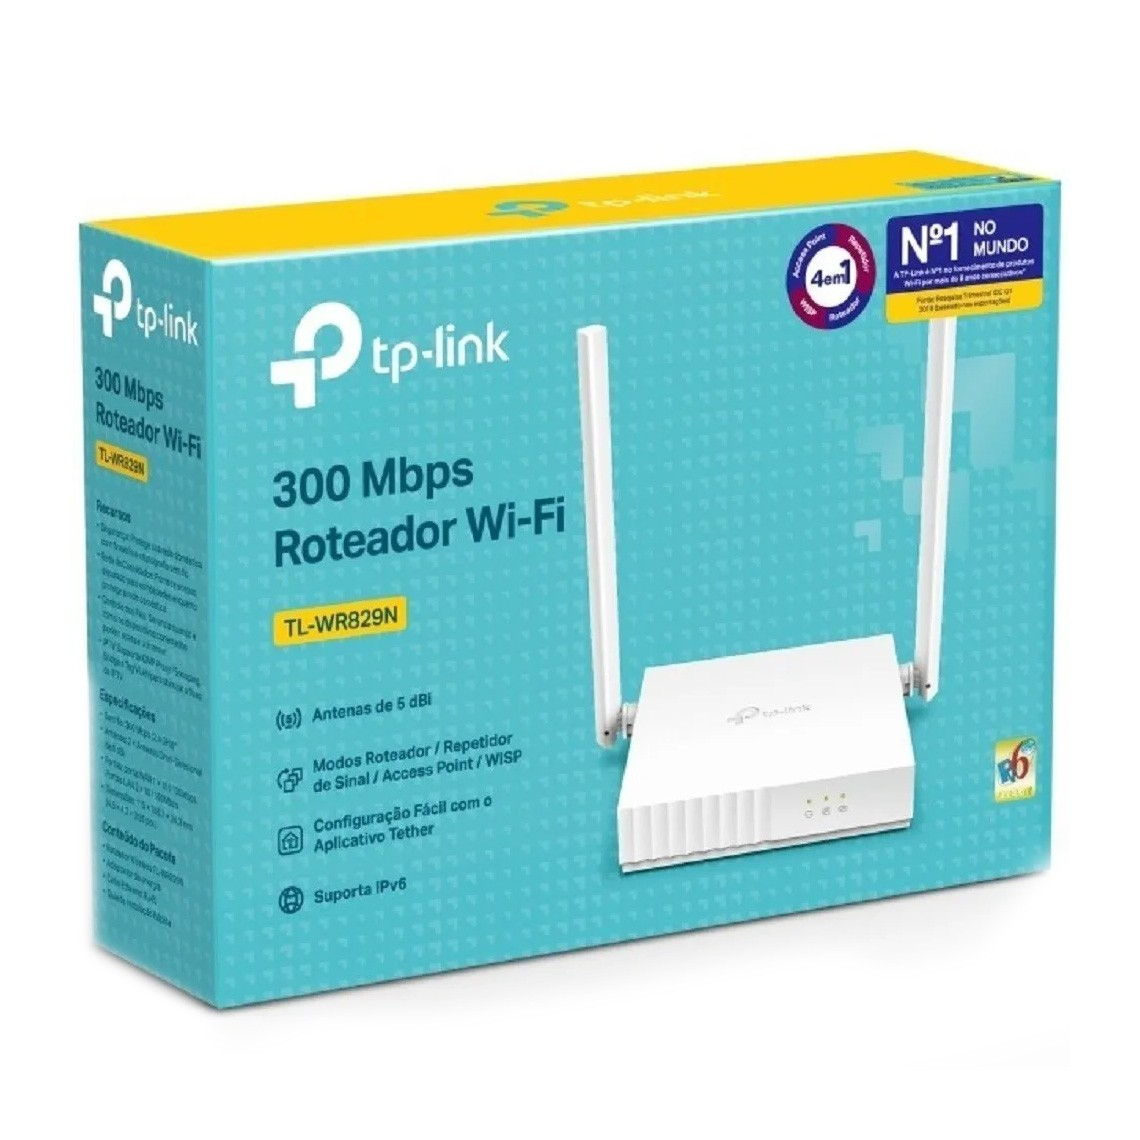 Roteador Tp-link Wireless Multimodo 300 Mbps 4em1 - TL-WR829N